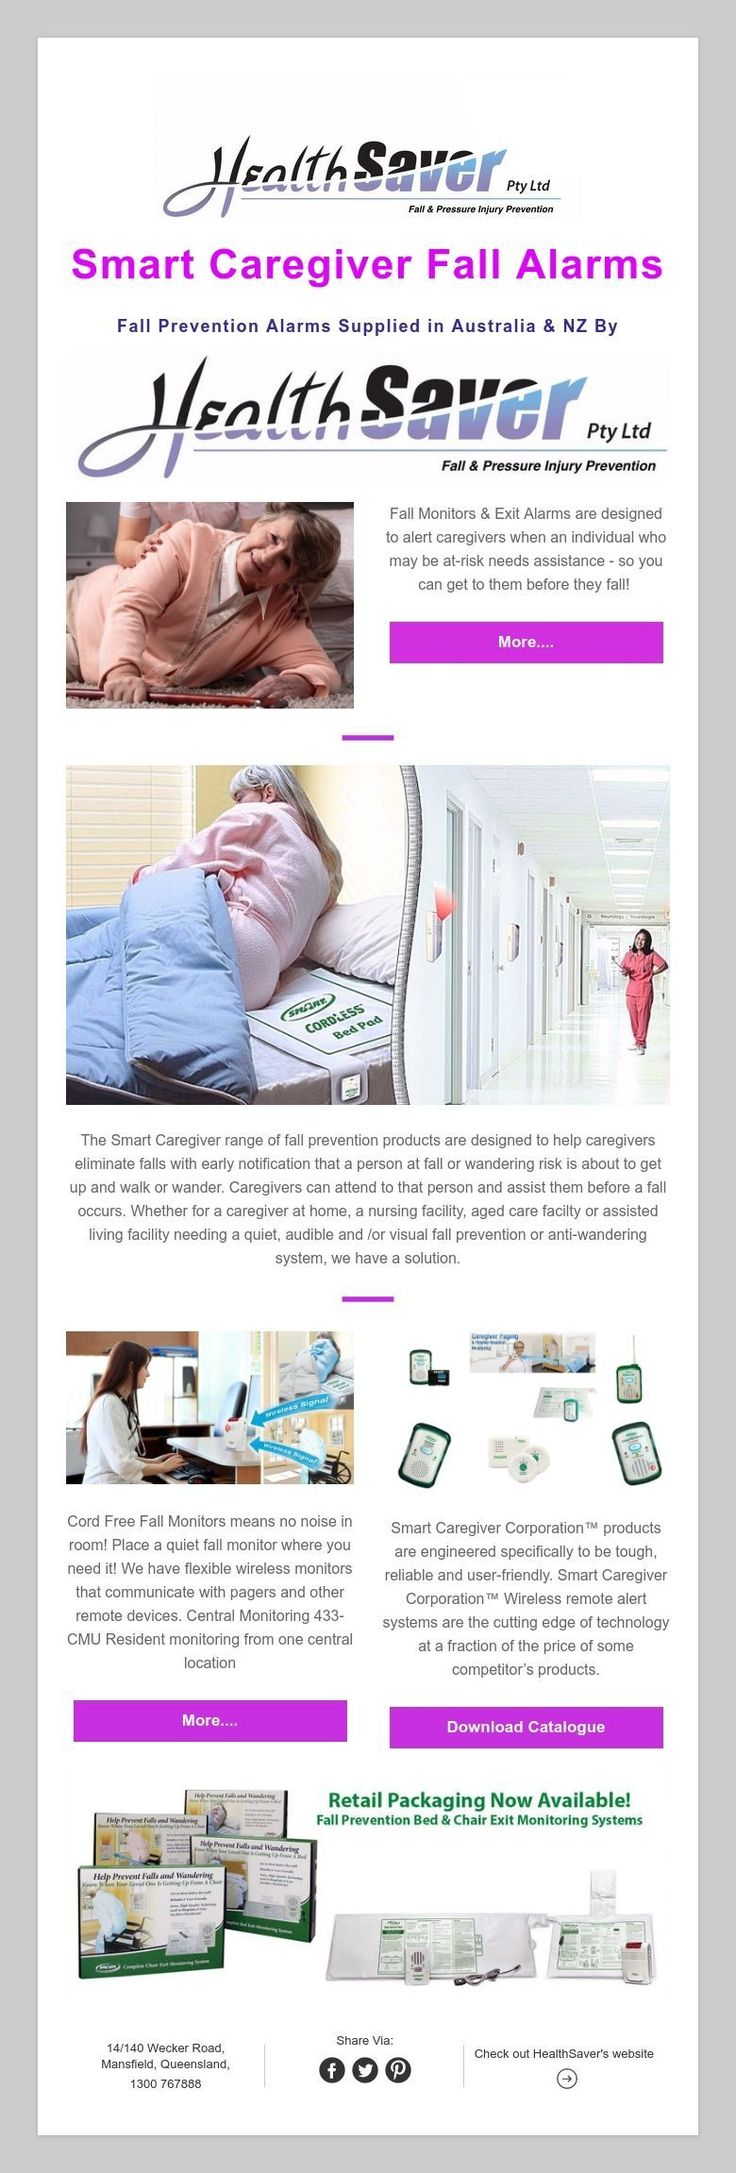 Smart Caregiver Fall Alarms  FallPrevention Alarms Supplied in Australia & NZ By